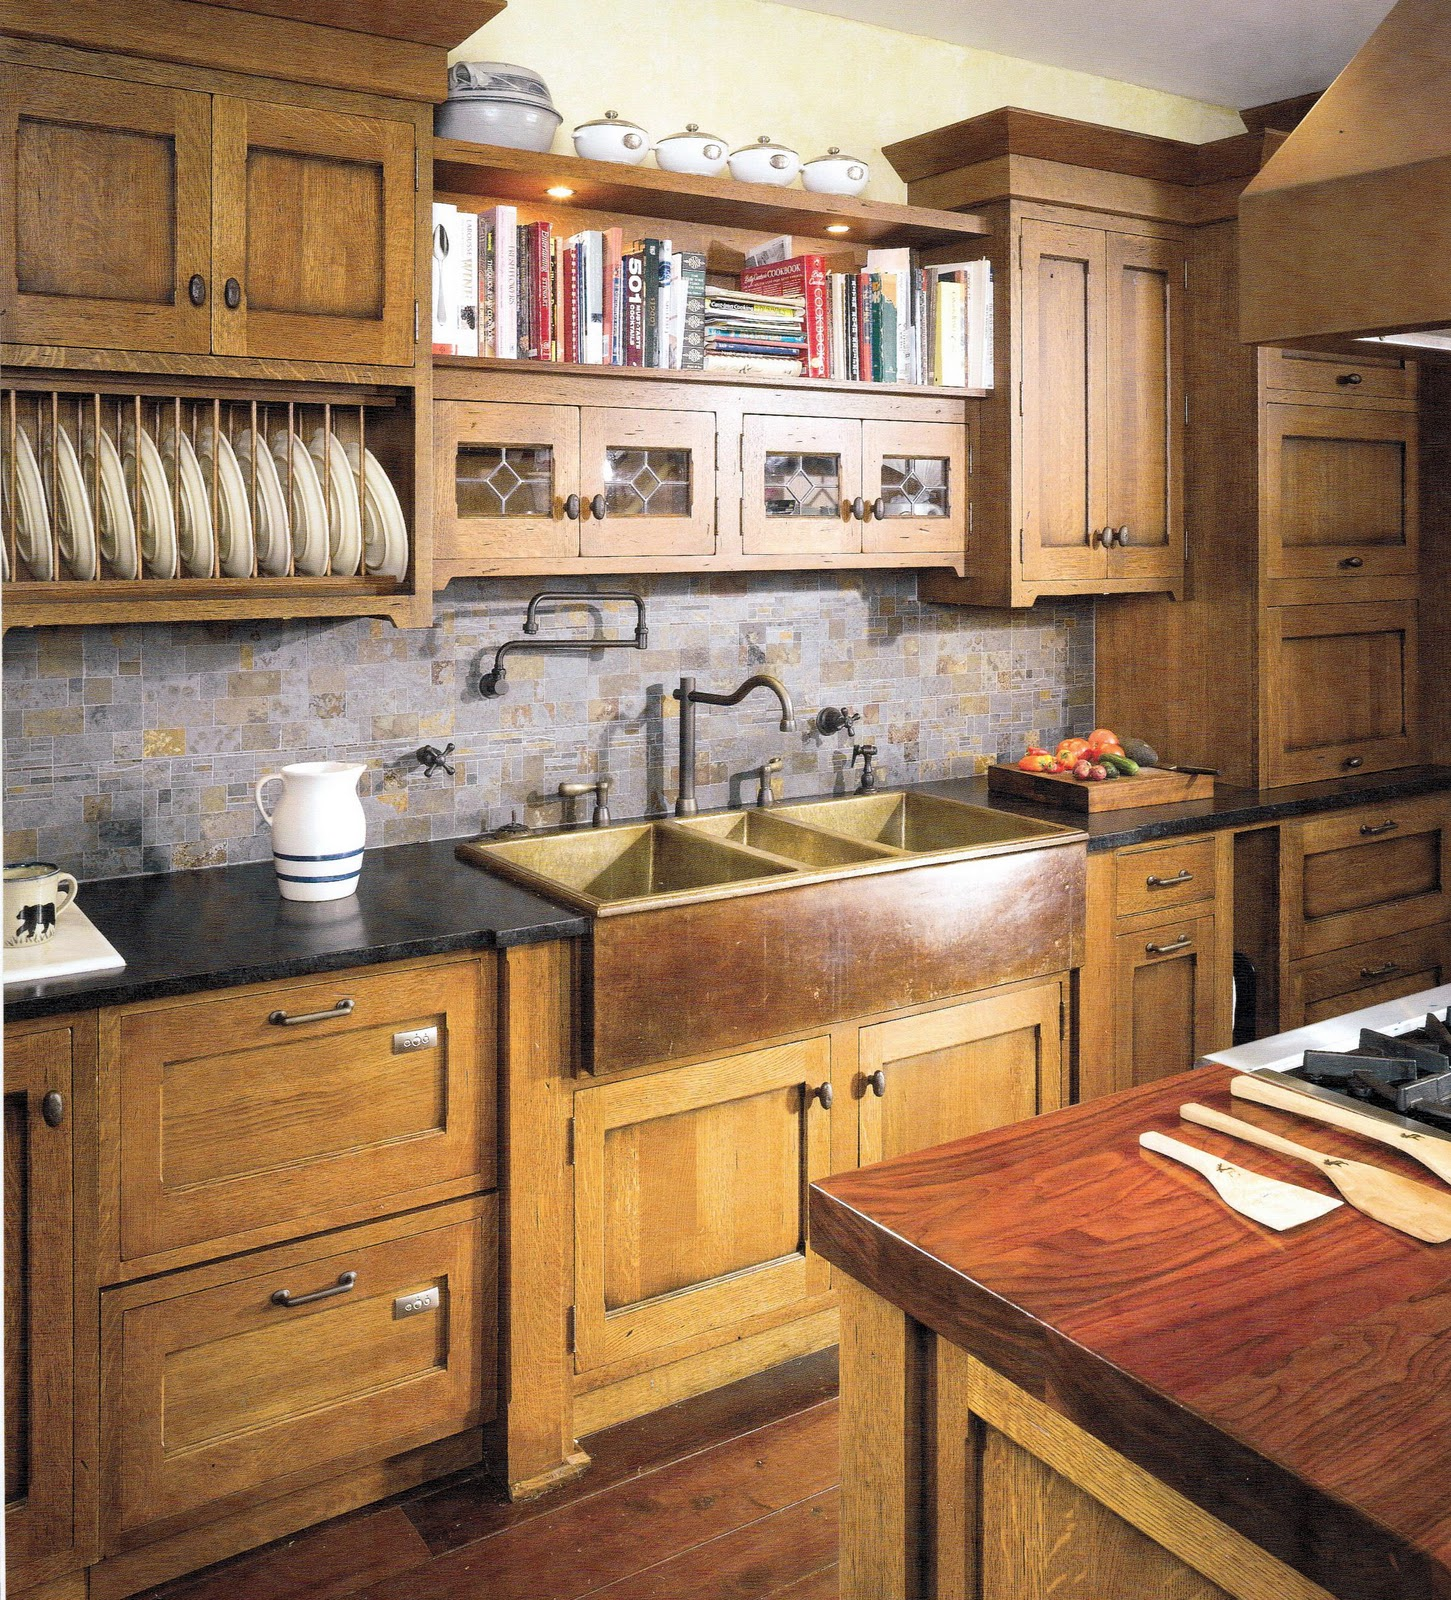 Craftsman Interiors Kitchen on mission style interiors